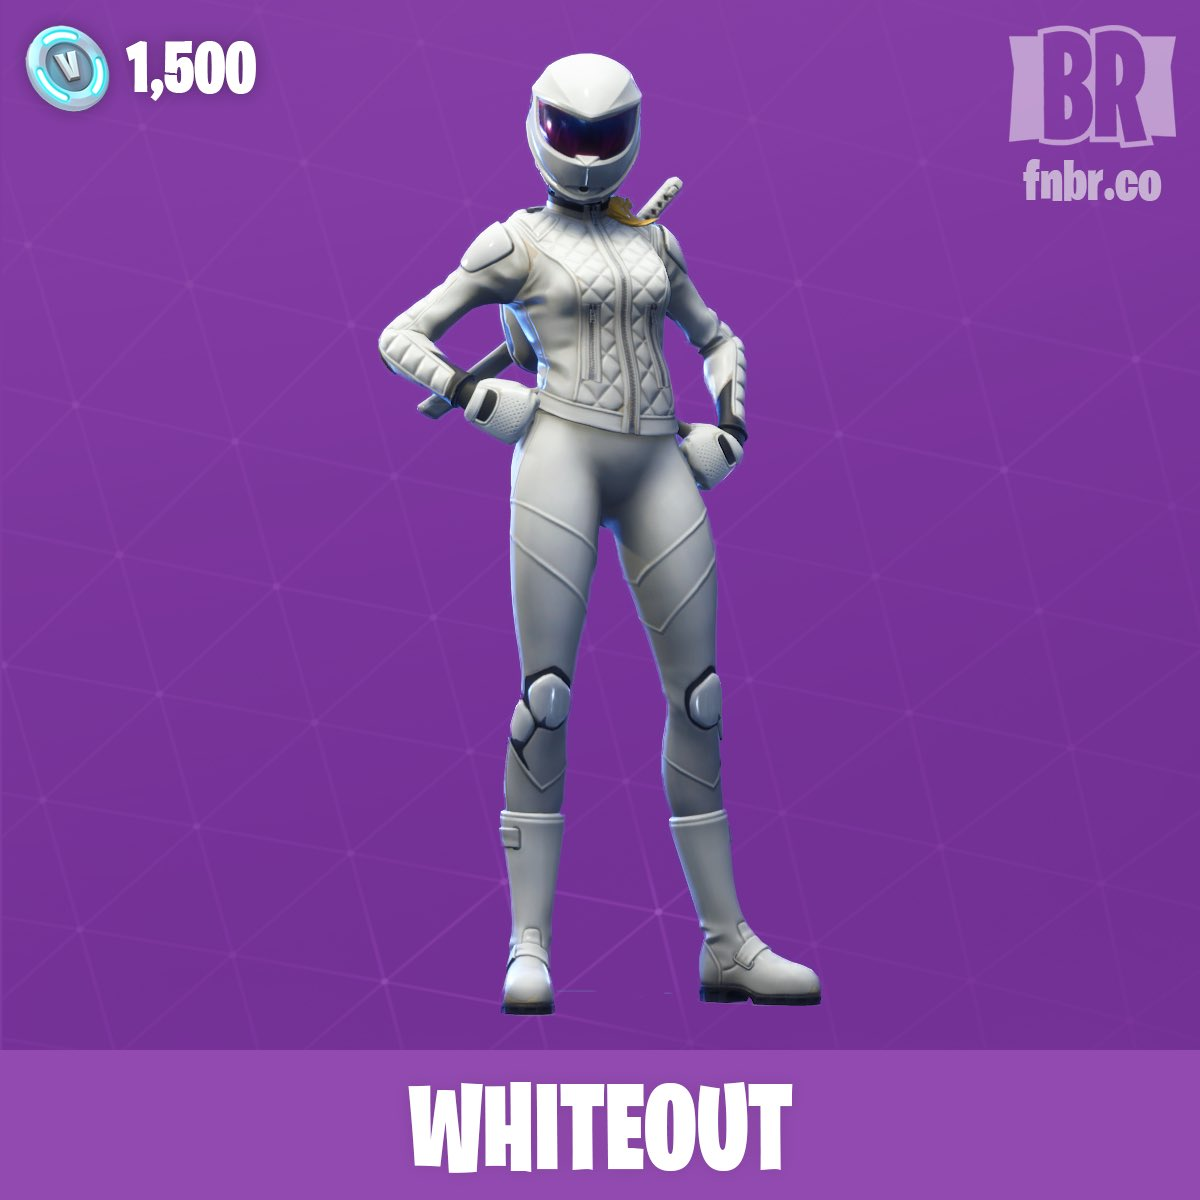 ICYMI: Based on leaks, we should be seeing the Vanishing Point set in tonight's item shop! #Fortnite <br>http://pic.twitter.com/Qs6xtwKjaE